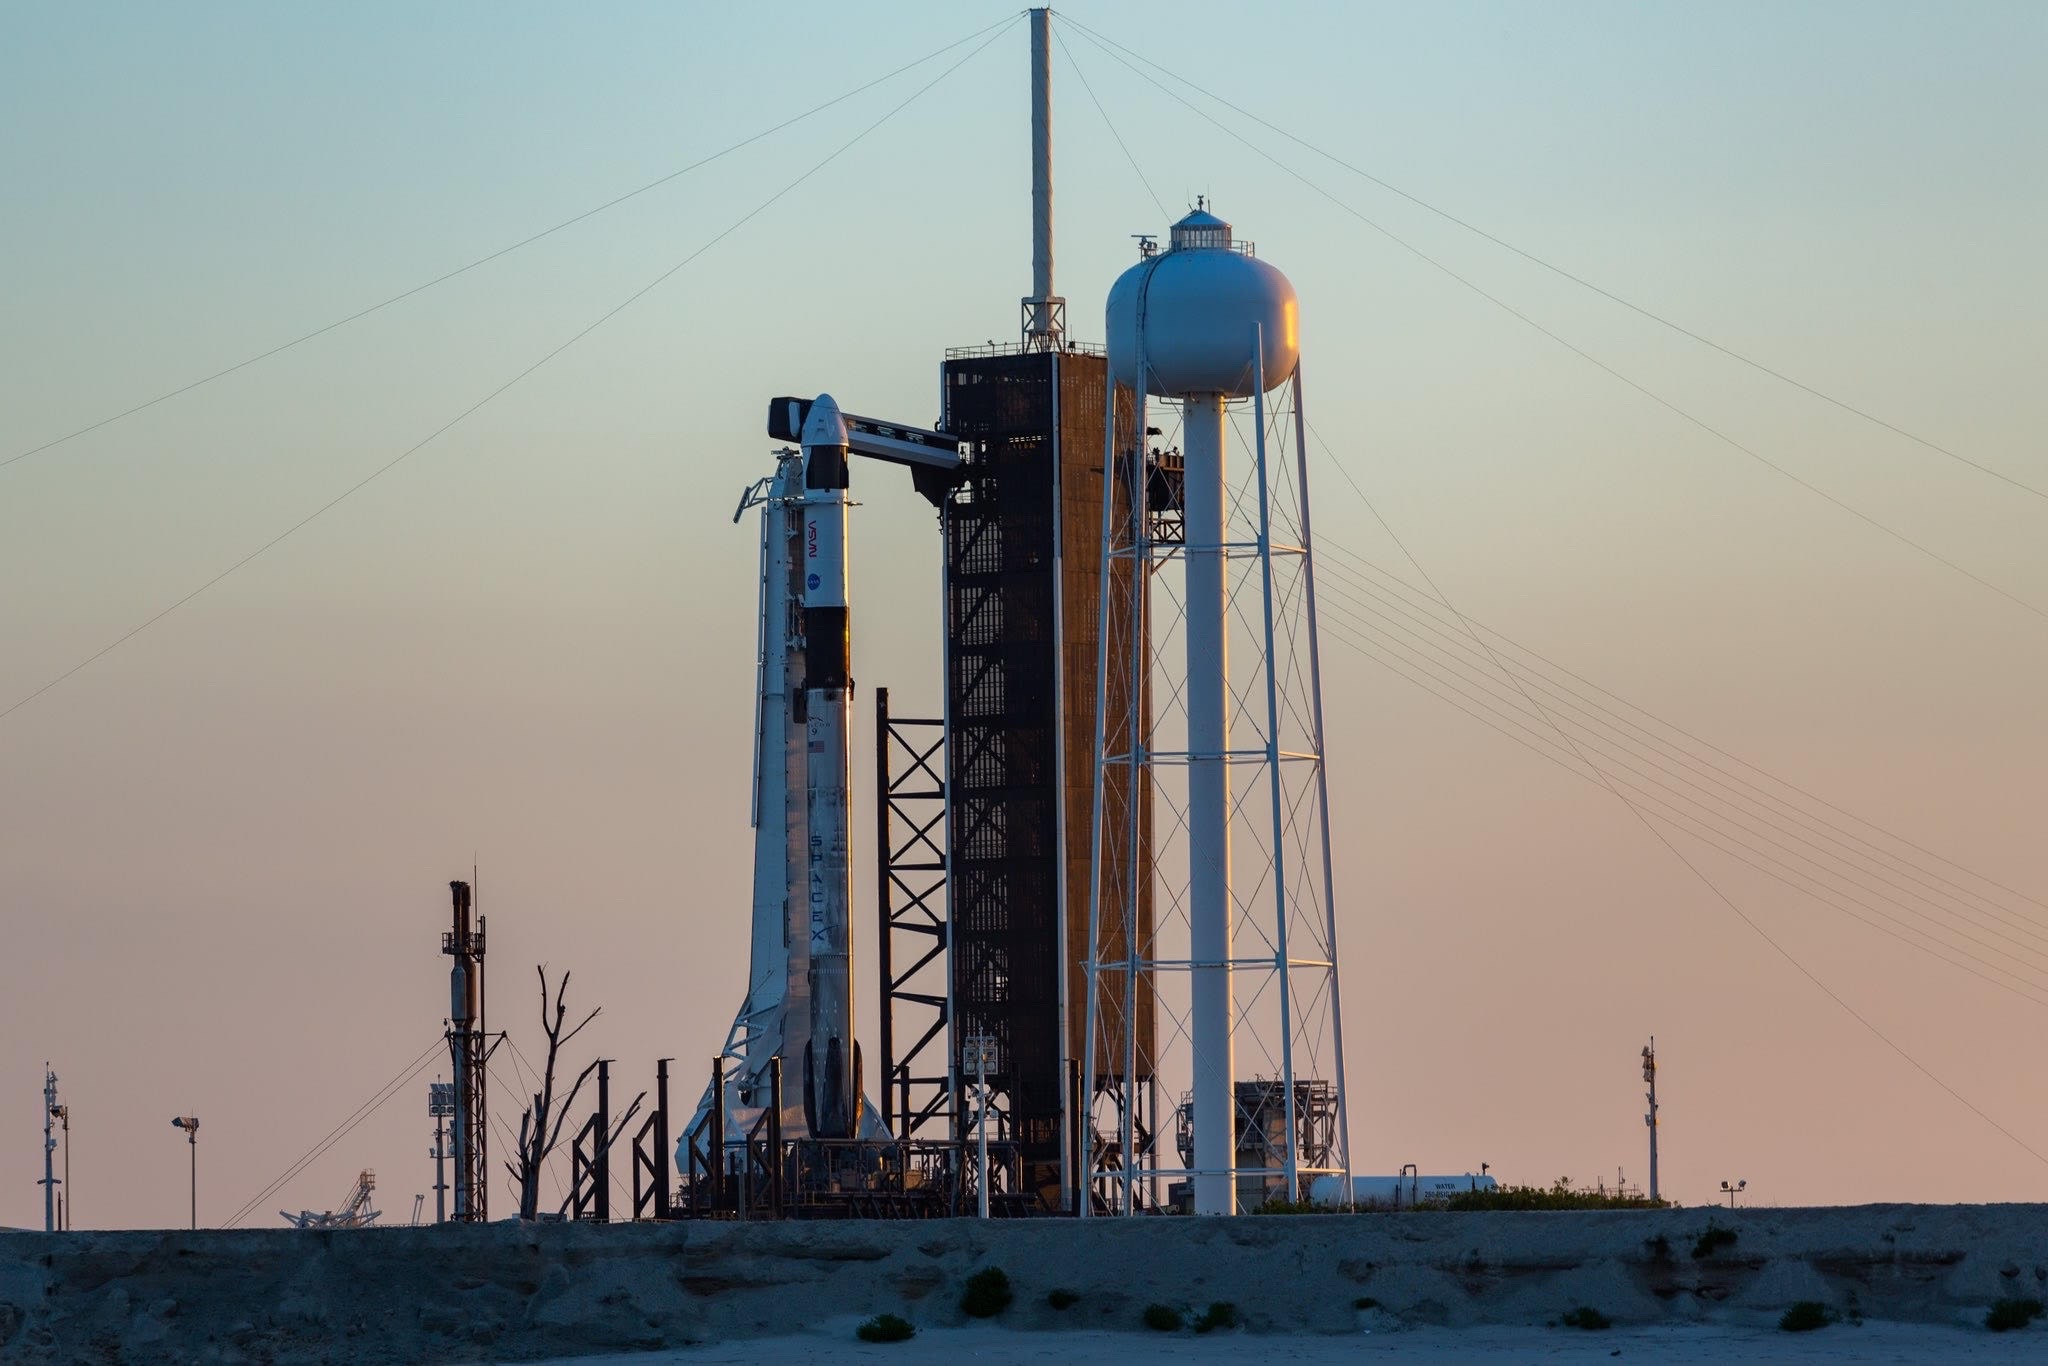 A SpaceX Falcon 9 rocket and Crew Dragon capsule on the launch pad at NASA's Kennedy Space Center in Florida ahead of the liftoff of the Crew-2 mission, which is scheduled to take place on April 23, 2021.